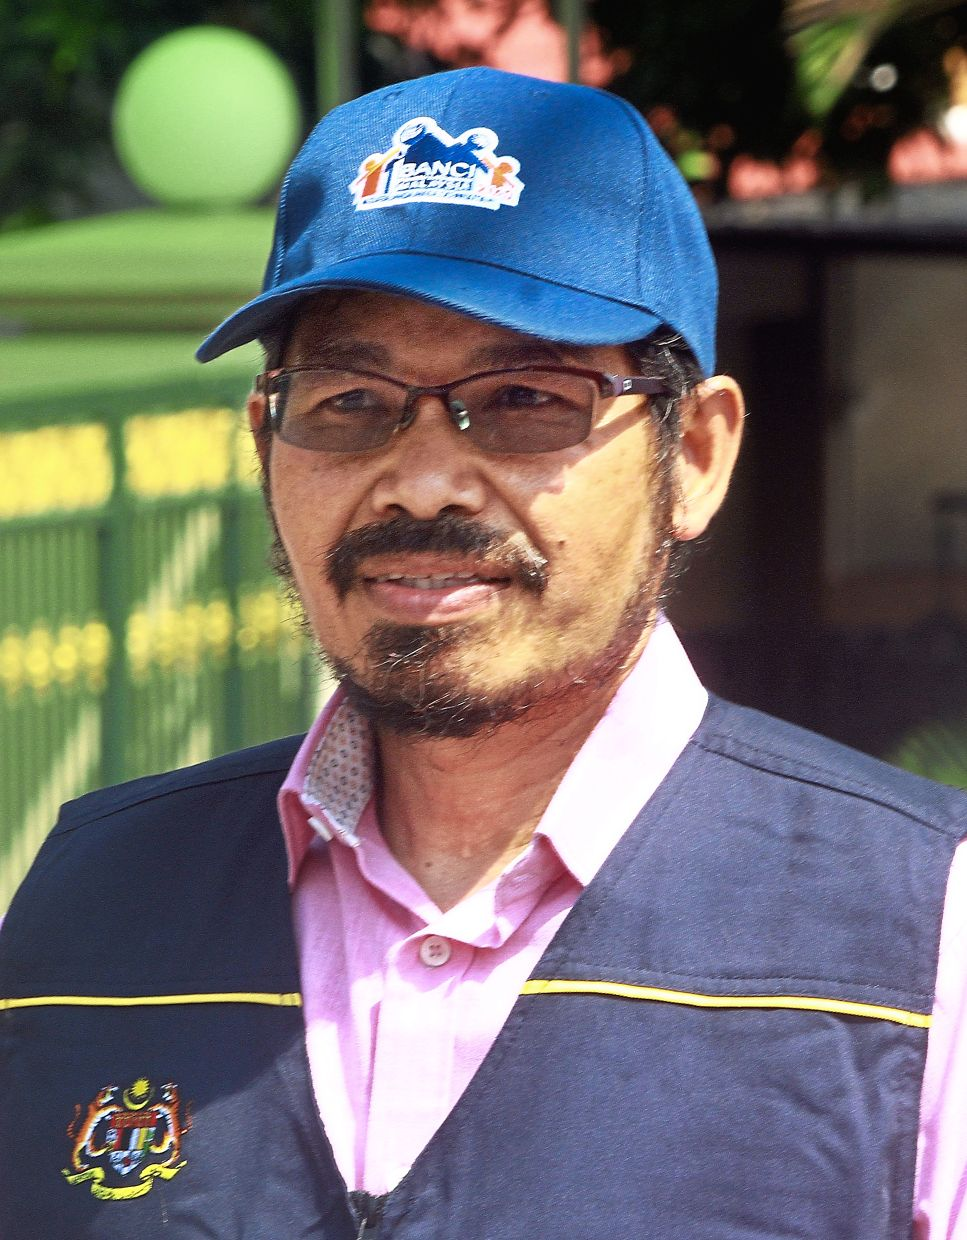 'Most of the respondents have been cooperative and we appreciate it, ' said Mohd Uzir.